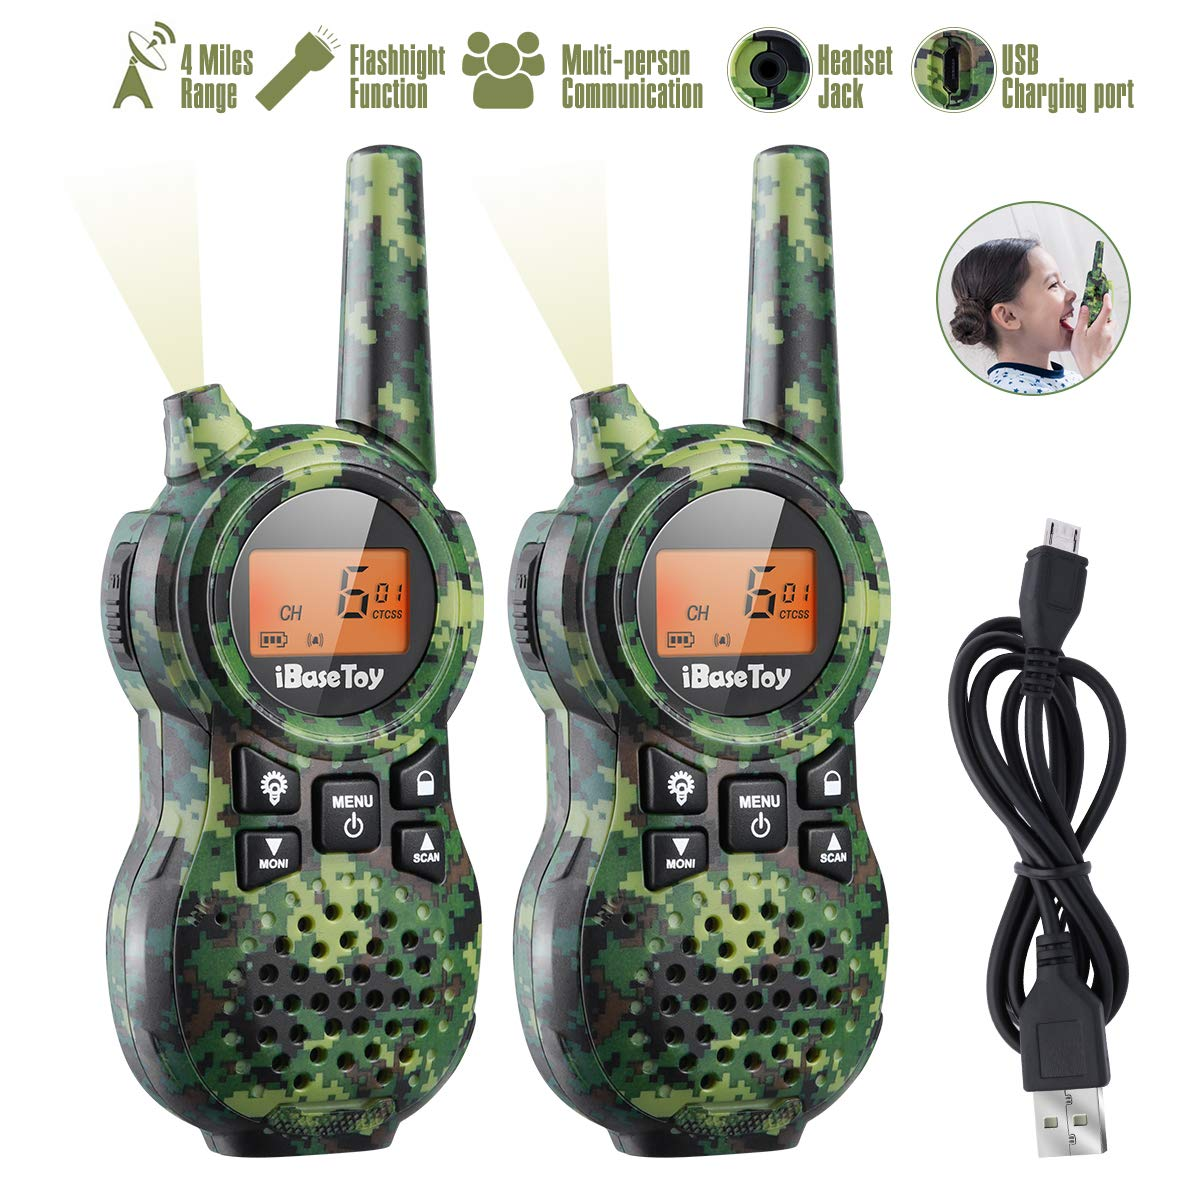 iBaseToy Walkie Talkies for Kids, Rechargeable Walkie Talkies with 22 Channels, 4-Miles Range Radio with Flashlight, LCD Screen and Charging line for Outdoor Adventures, Camping, Hiking - 2 Pack by iBaseToy (Image #1)